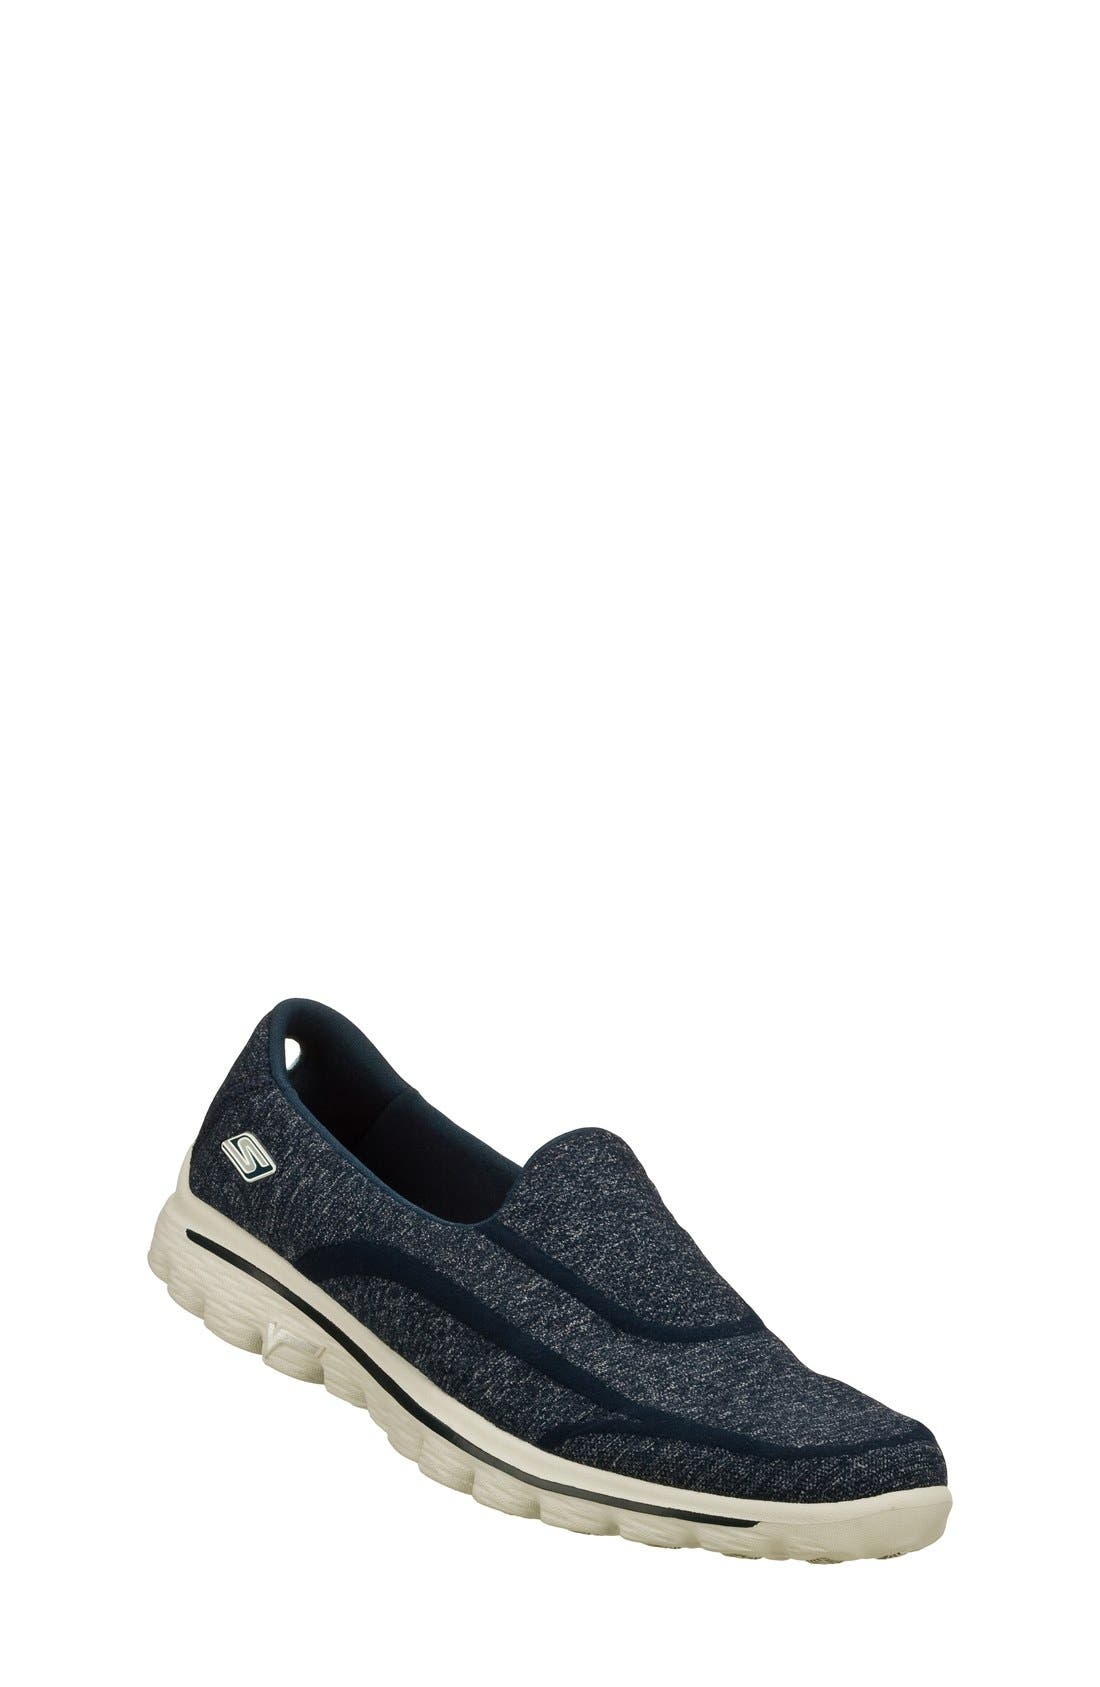 ff9b50677869 skechers gowalk 2 super sock sale   OFF56% Discounted